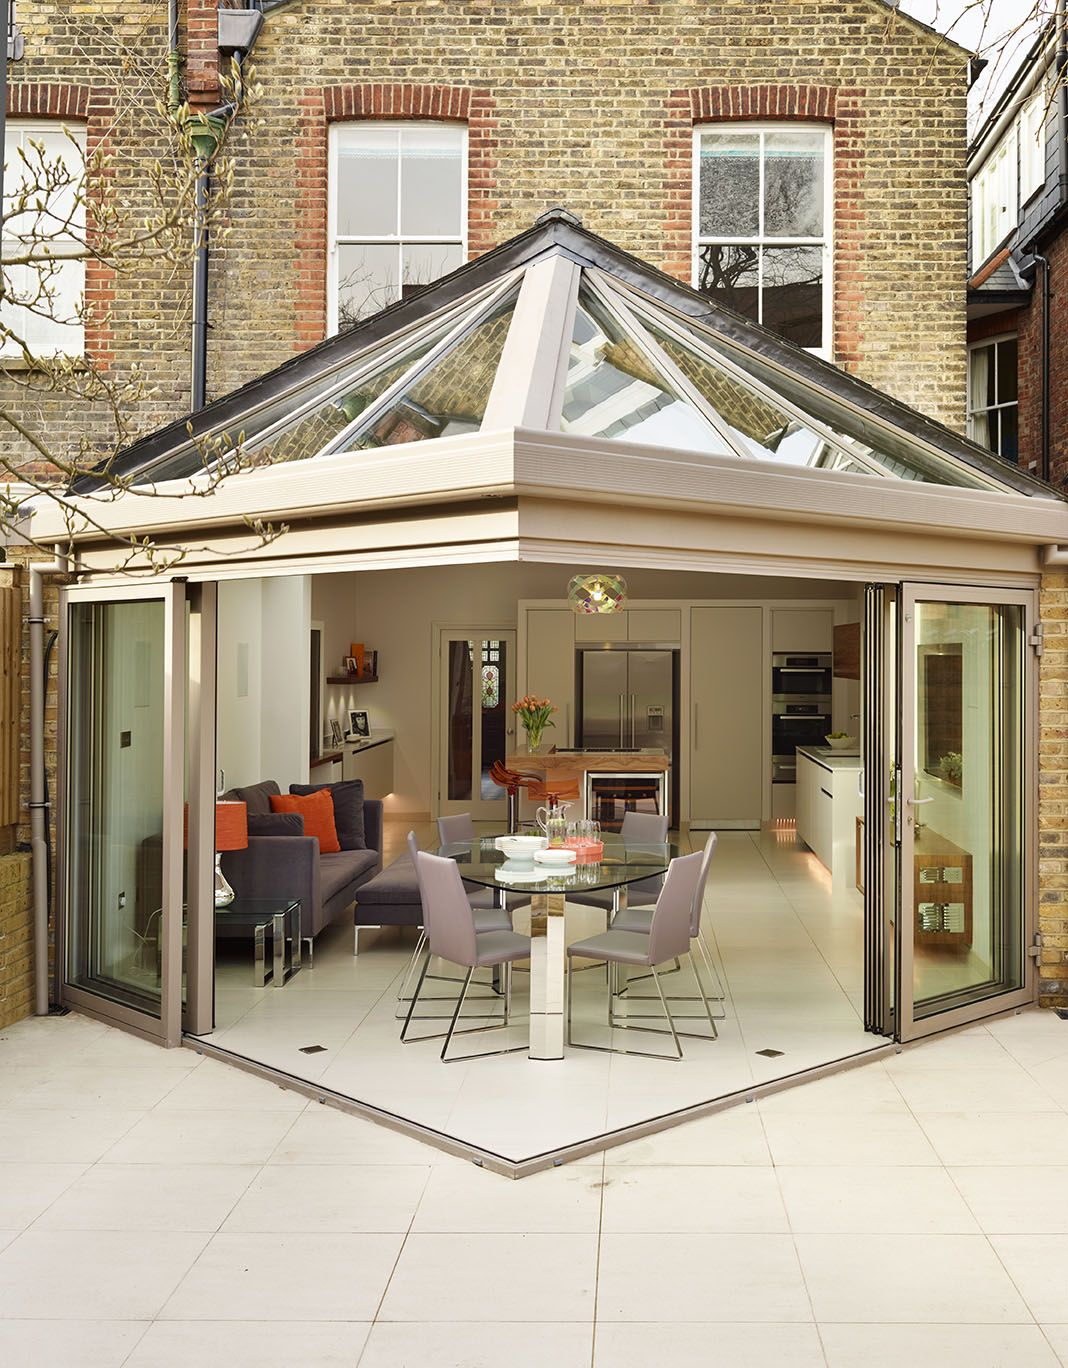 Roundhouse bespoke kitchen contributes to a seamless flow ... on Bespoke Outdoor Living id=51327